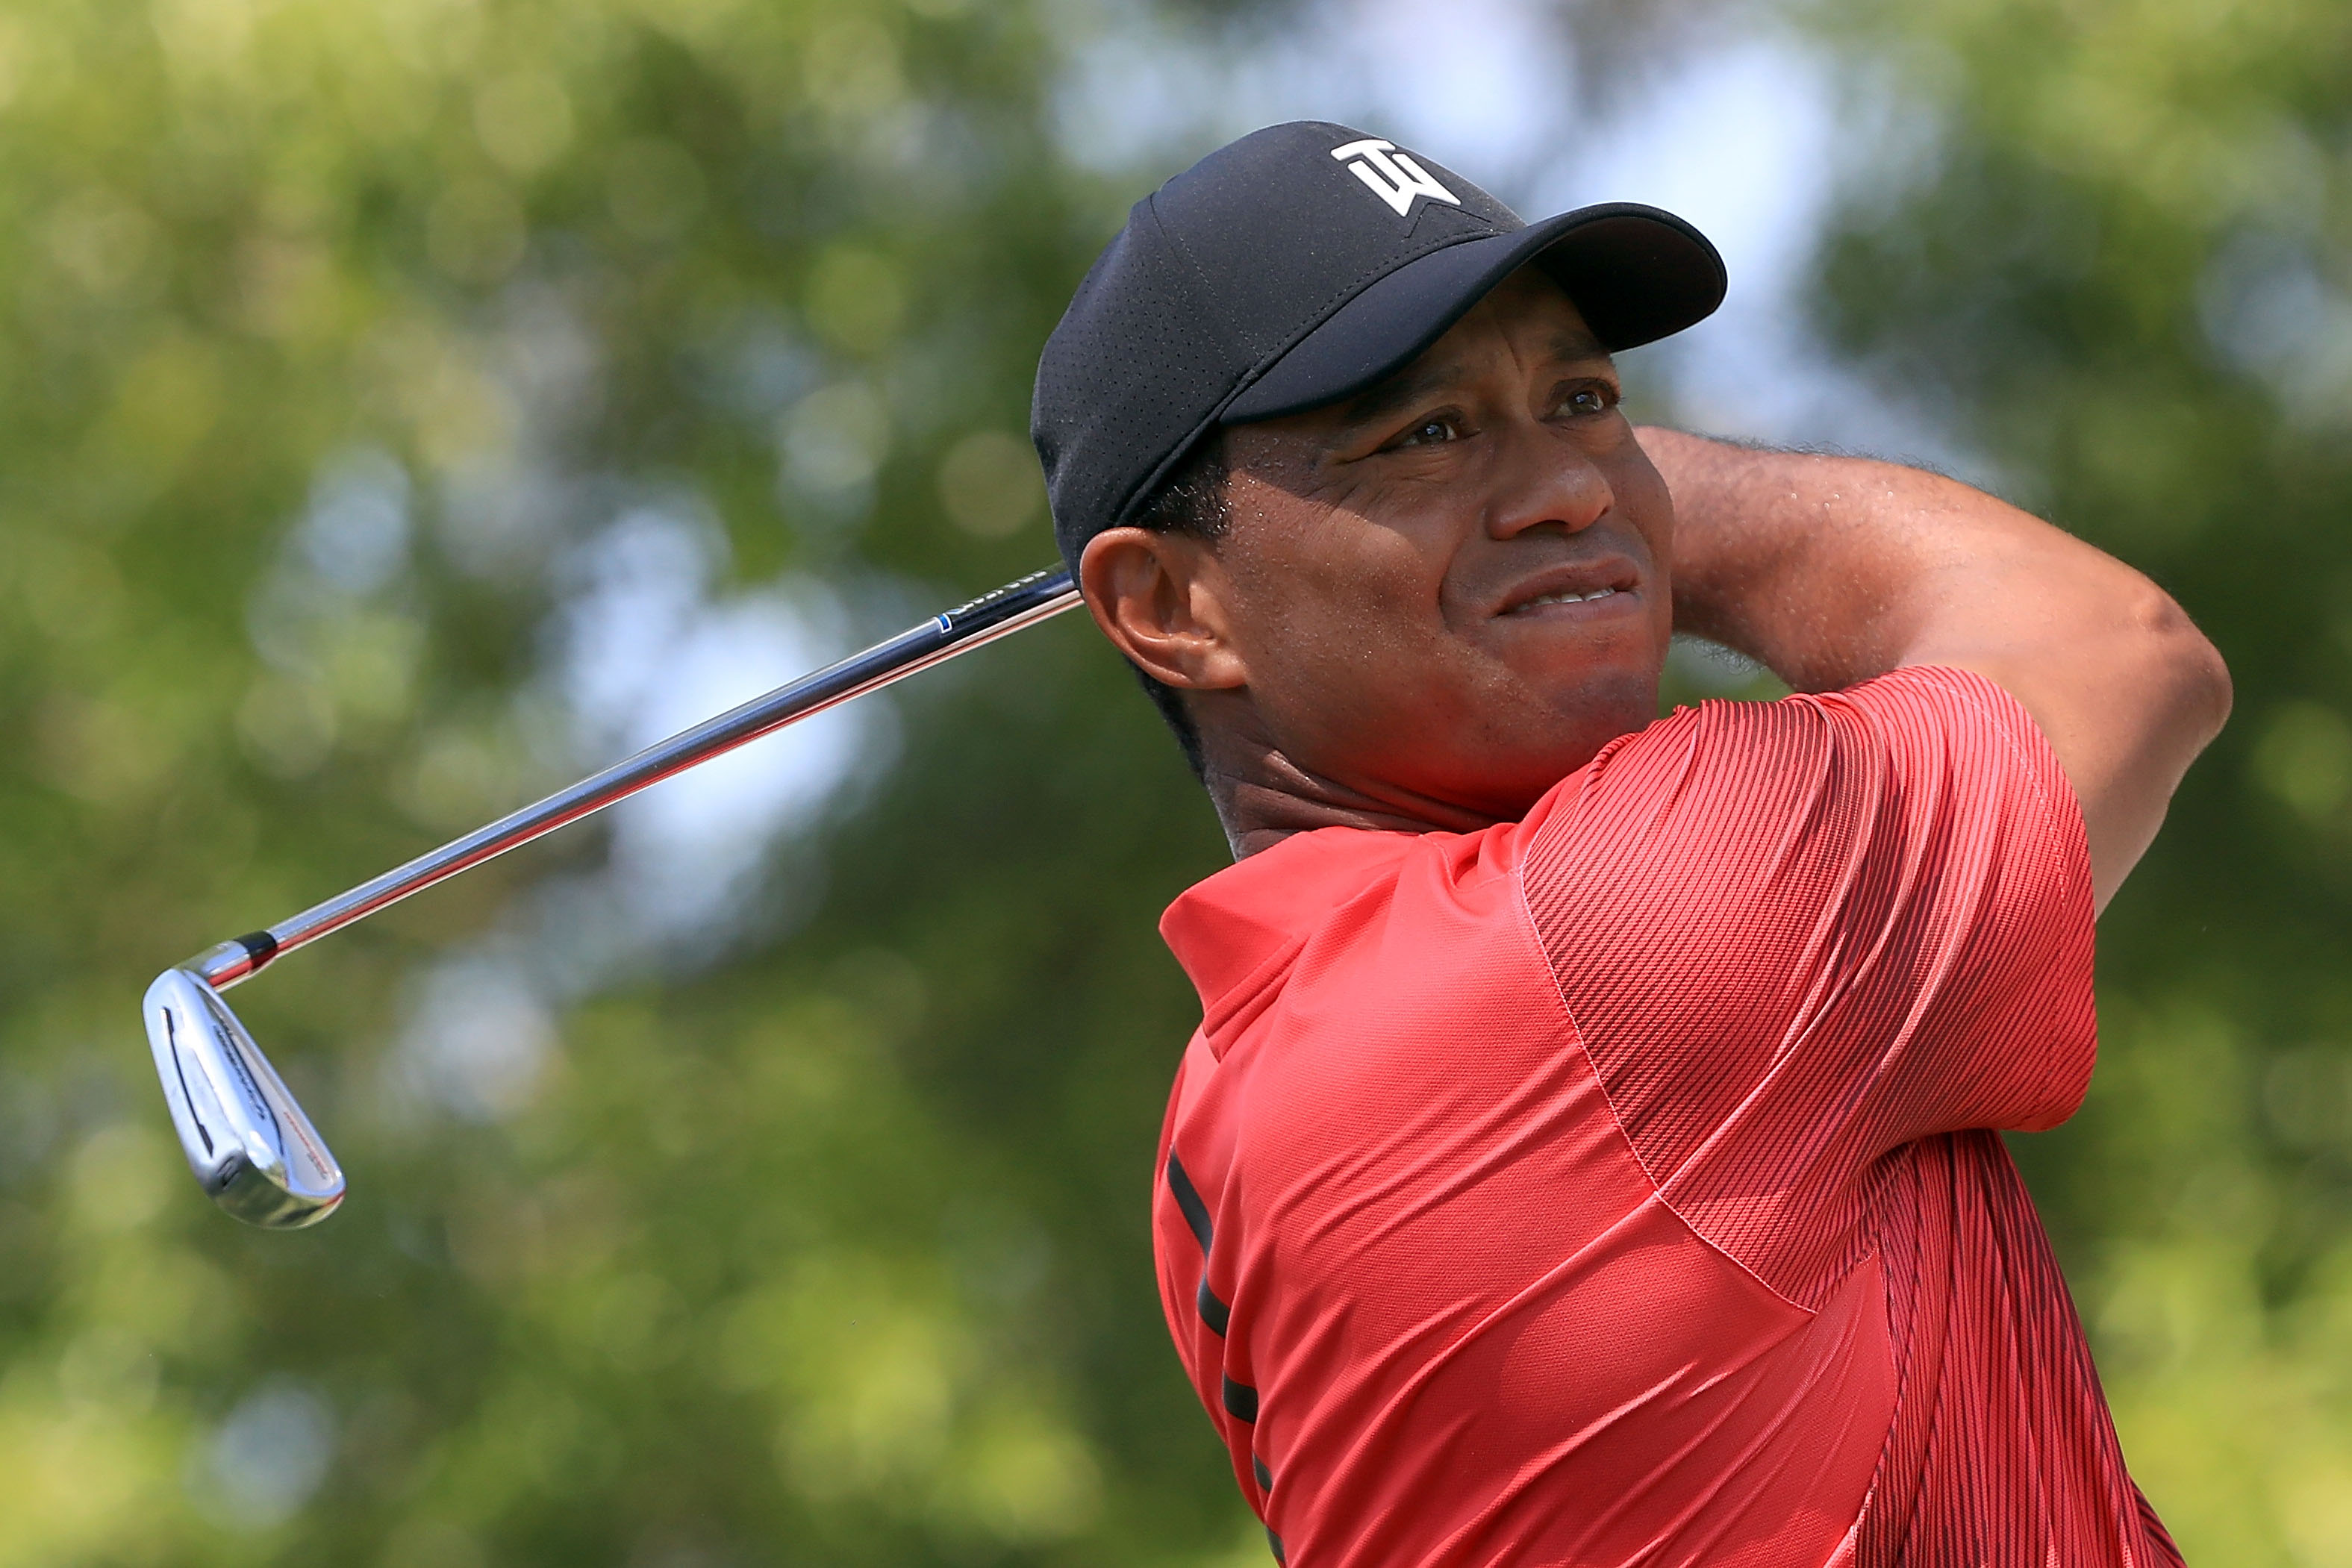 Tiger Woods leads group of five golfers in Forbes Top 100 earners